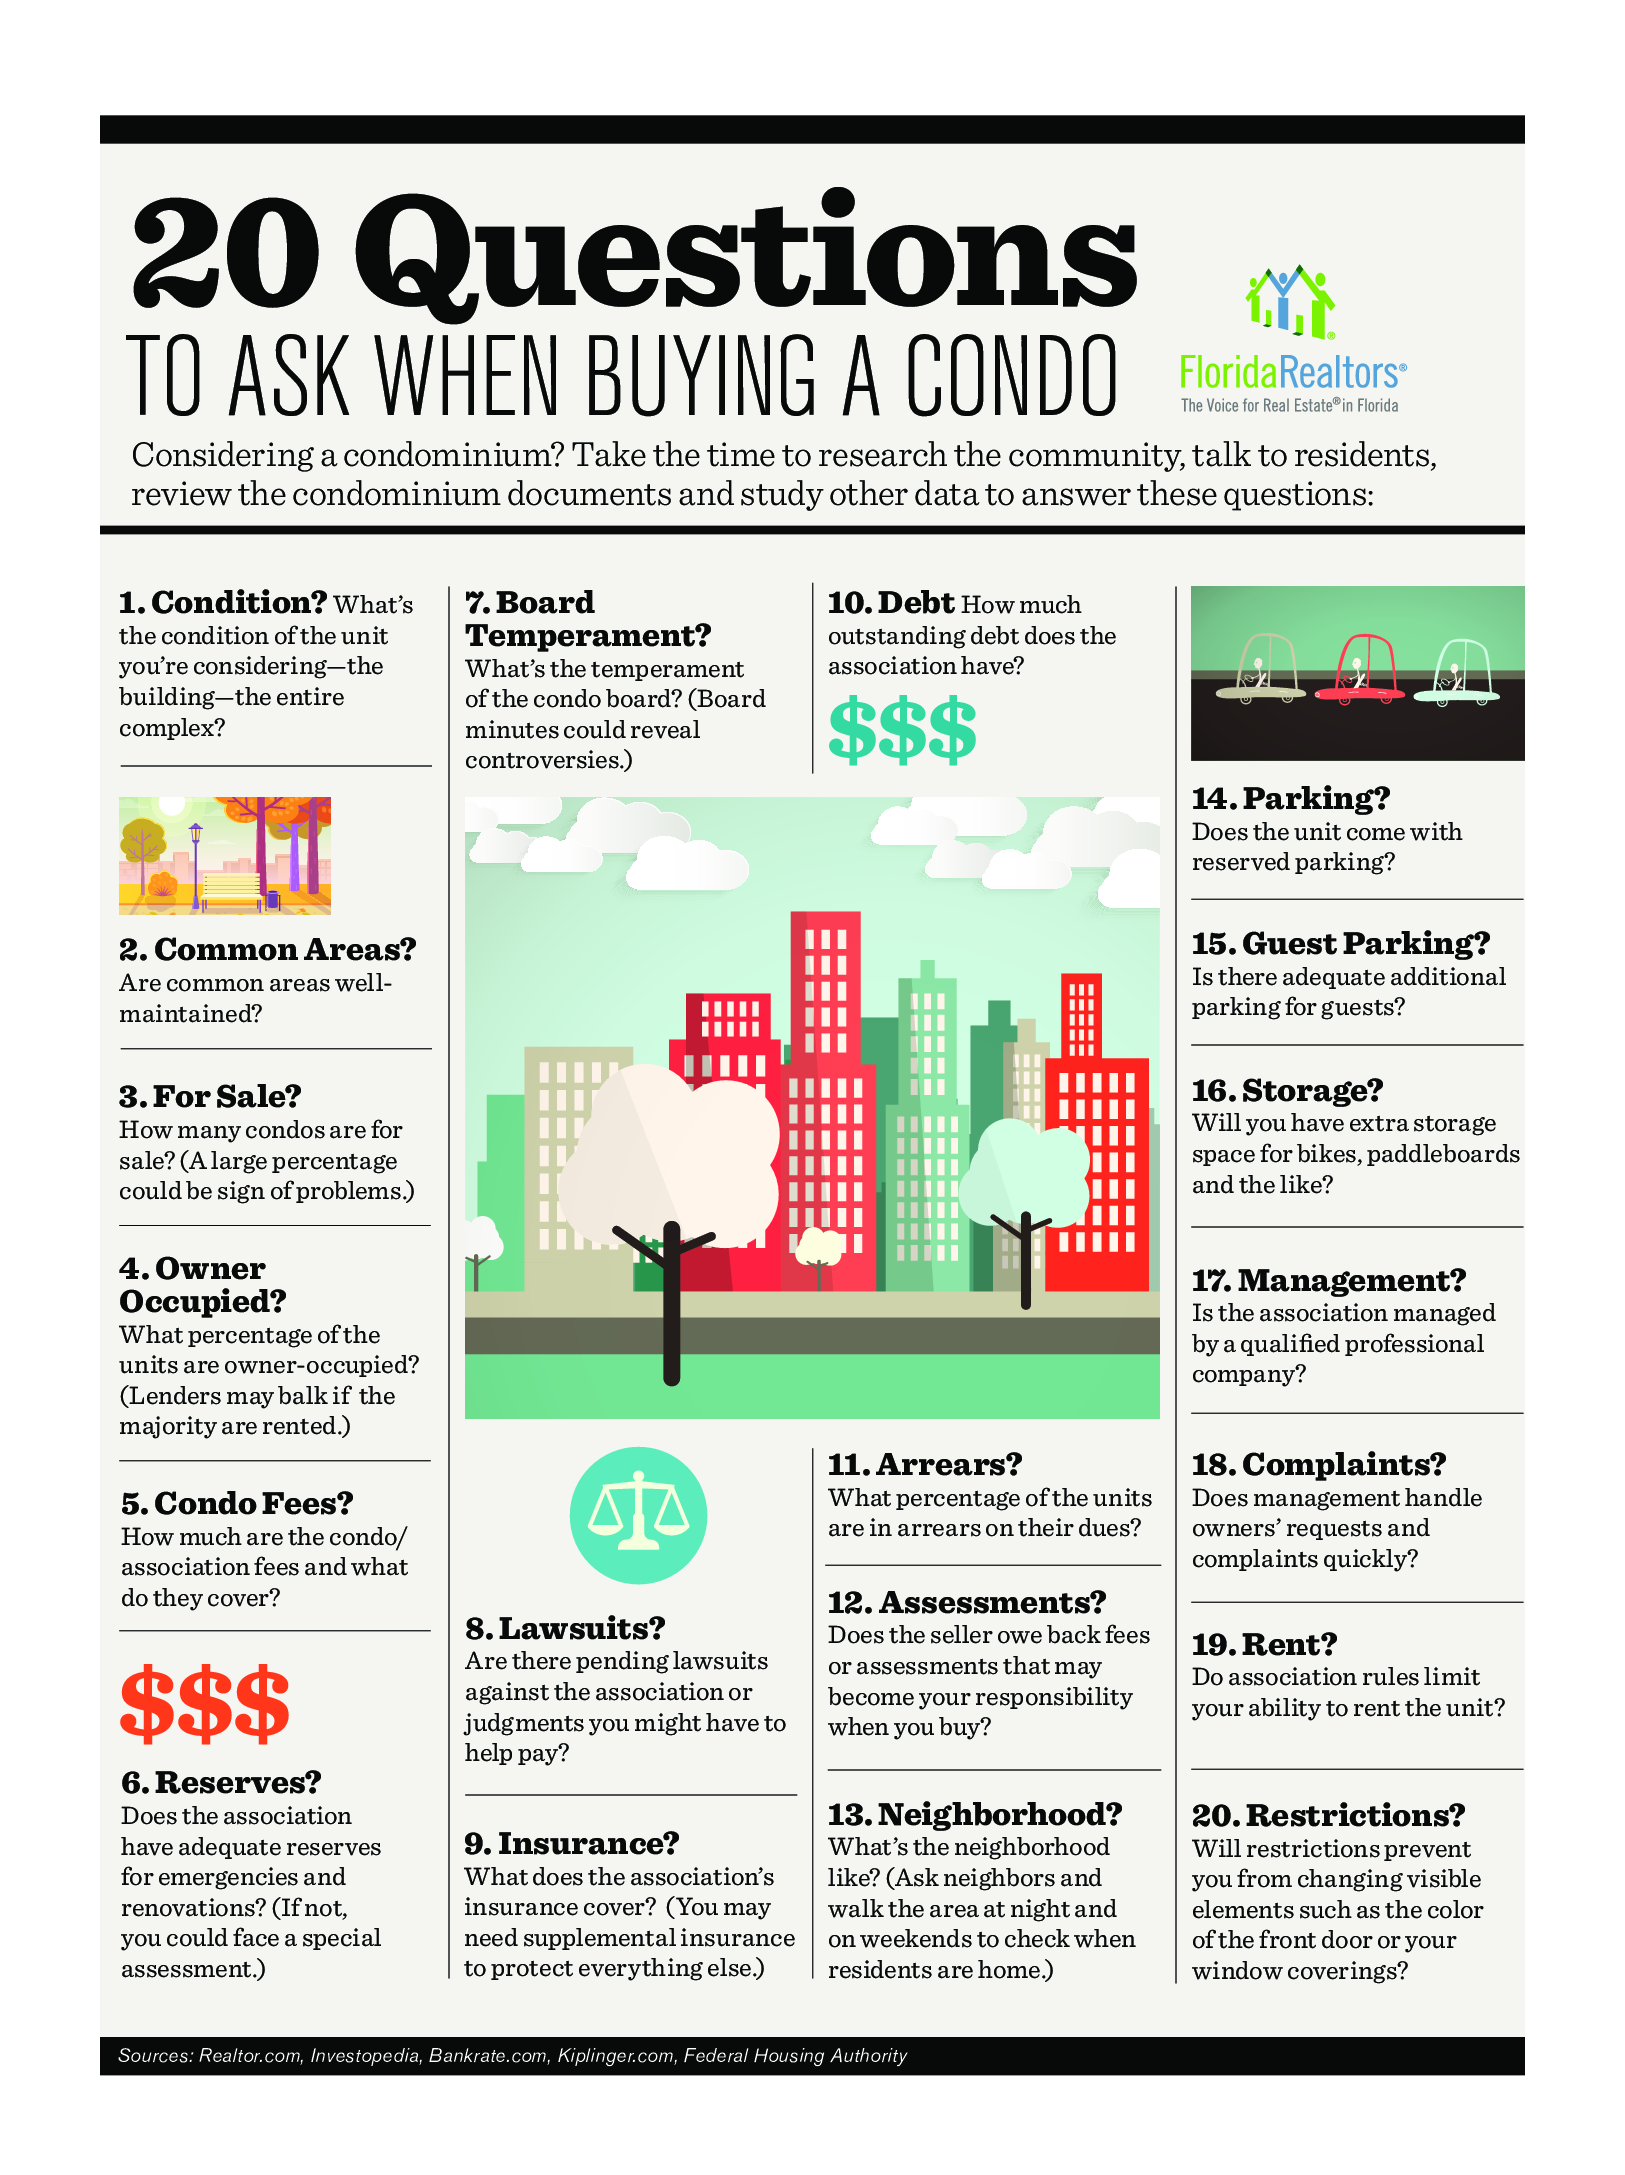 20 Questions To Ask When Buying a Condo